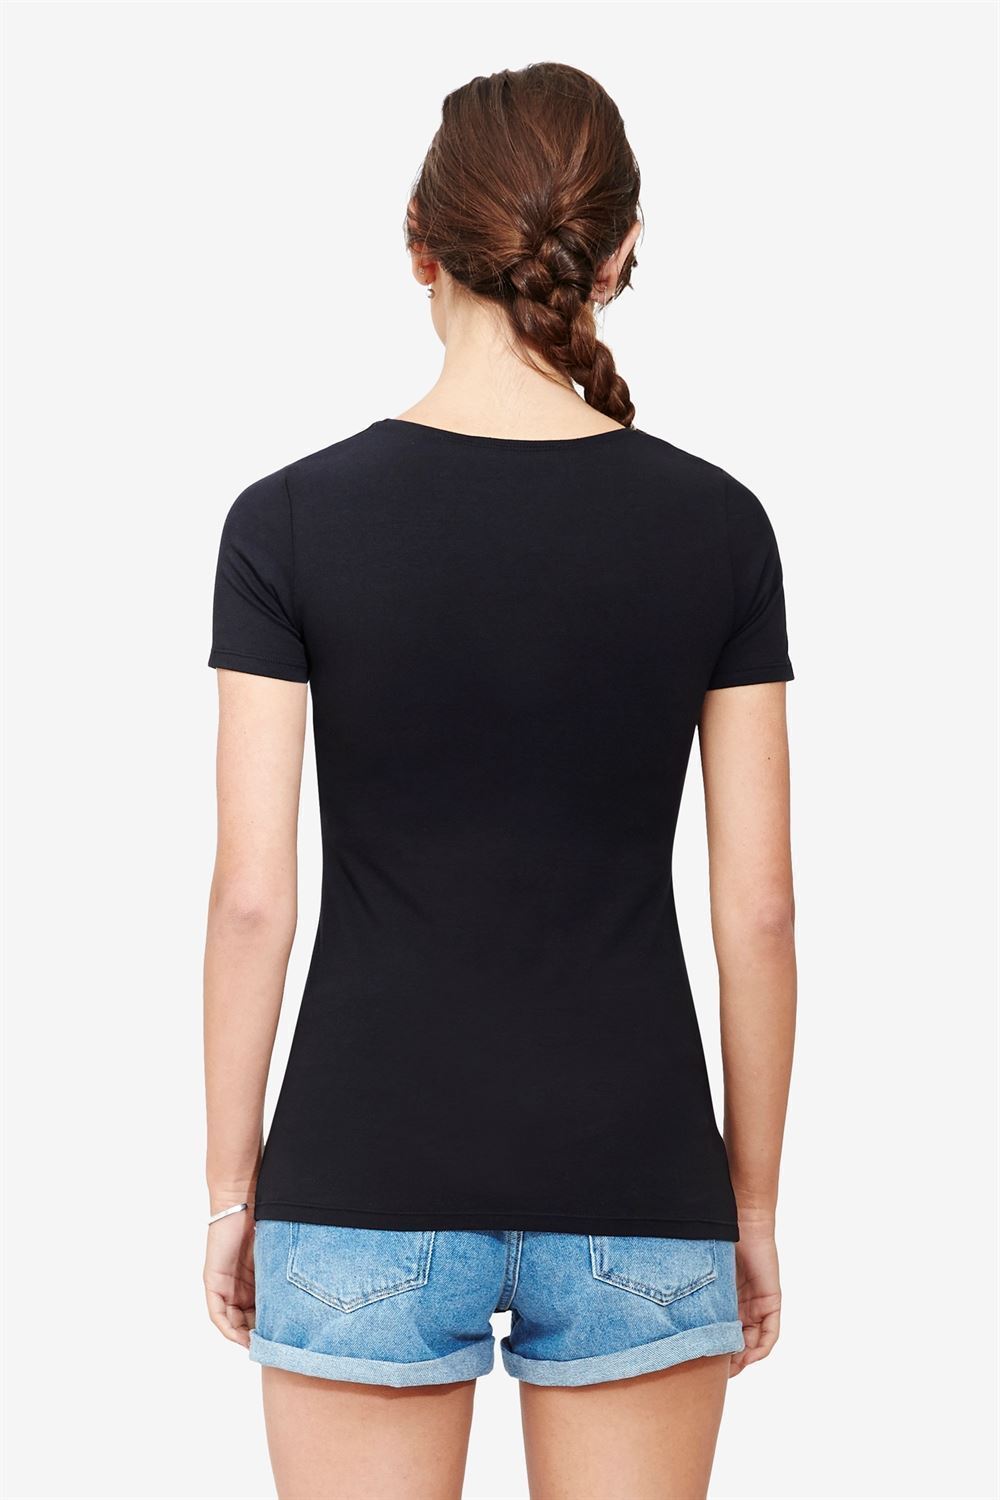 Short sleeved black Maternity & nursing Top made of organic cotton - Seen from behind